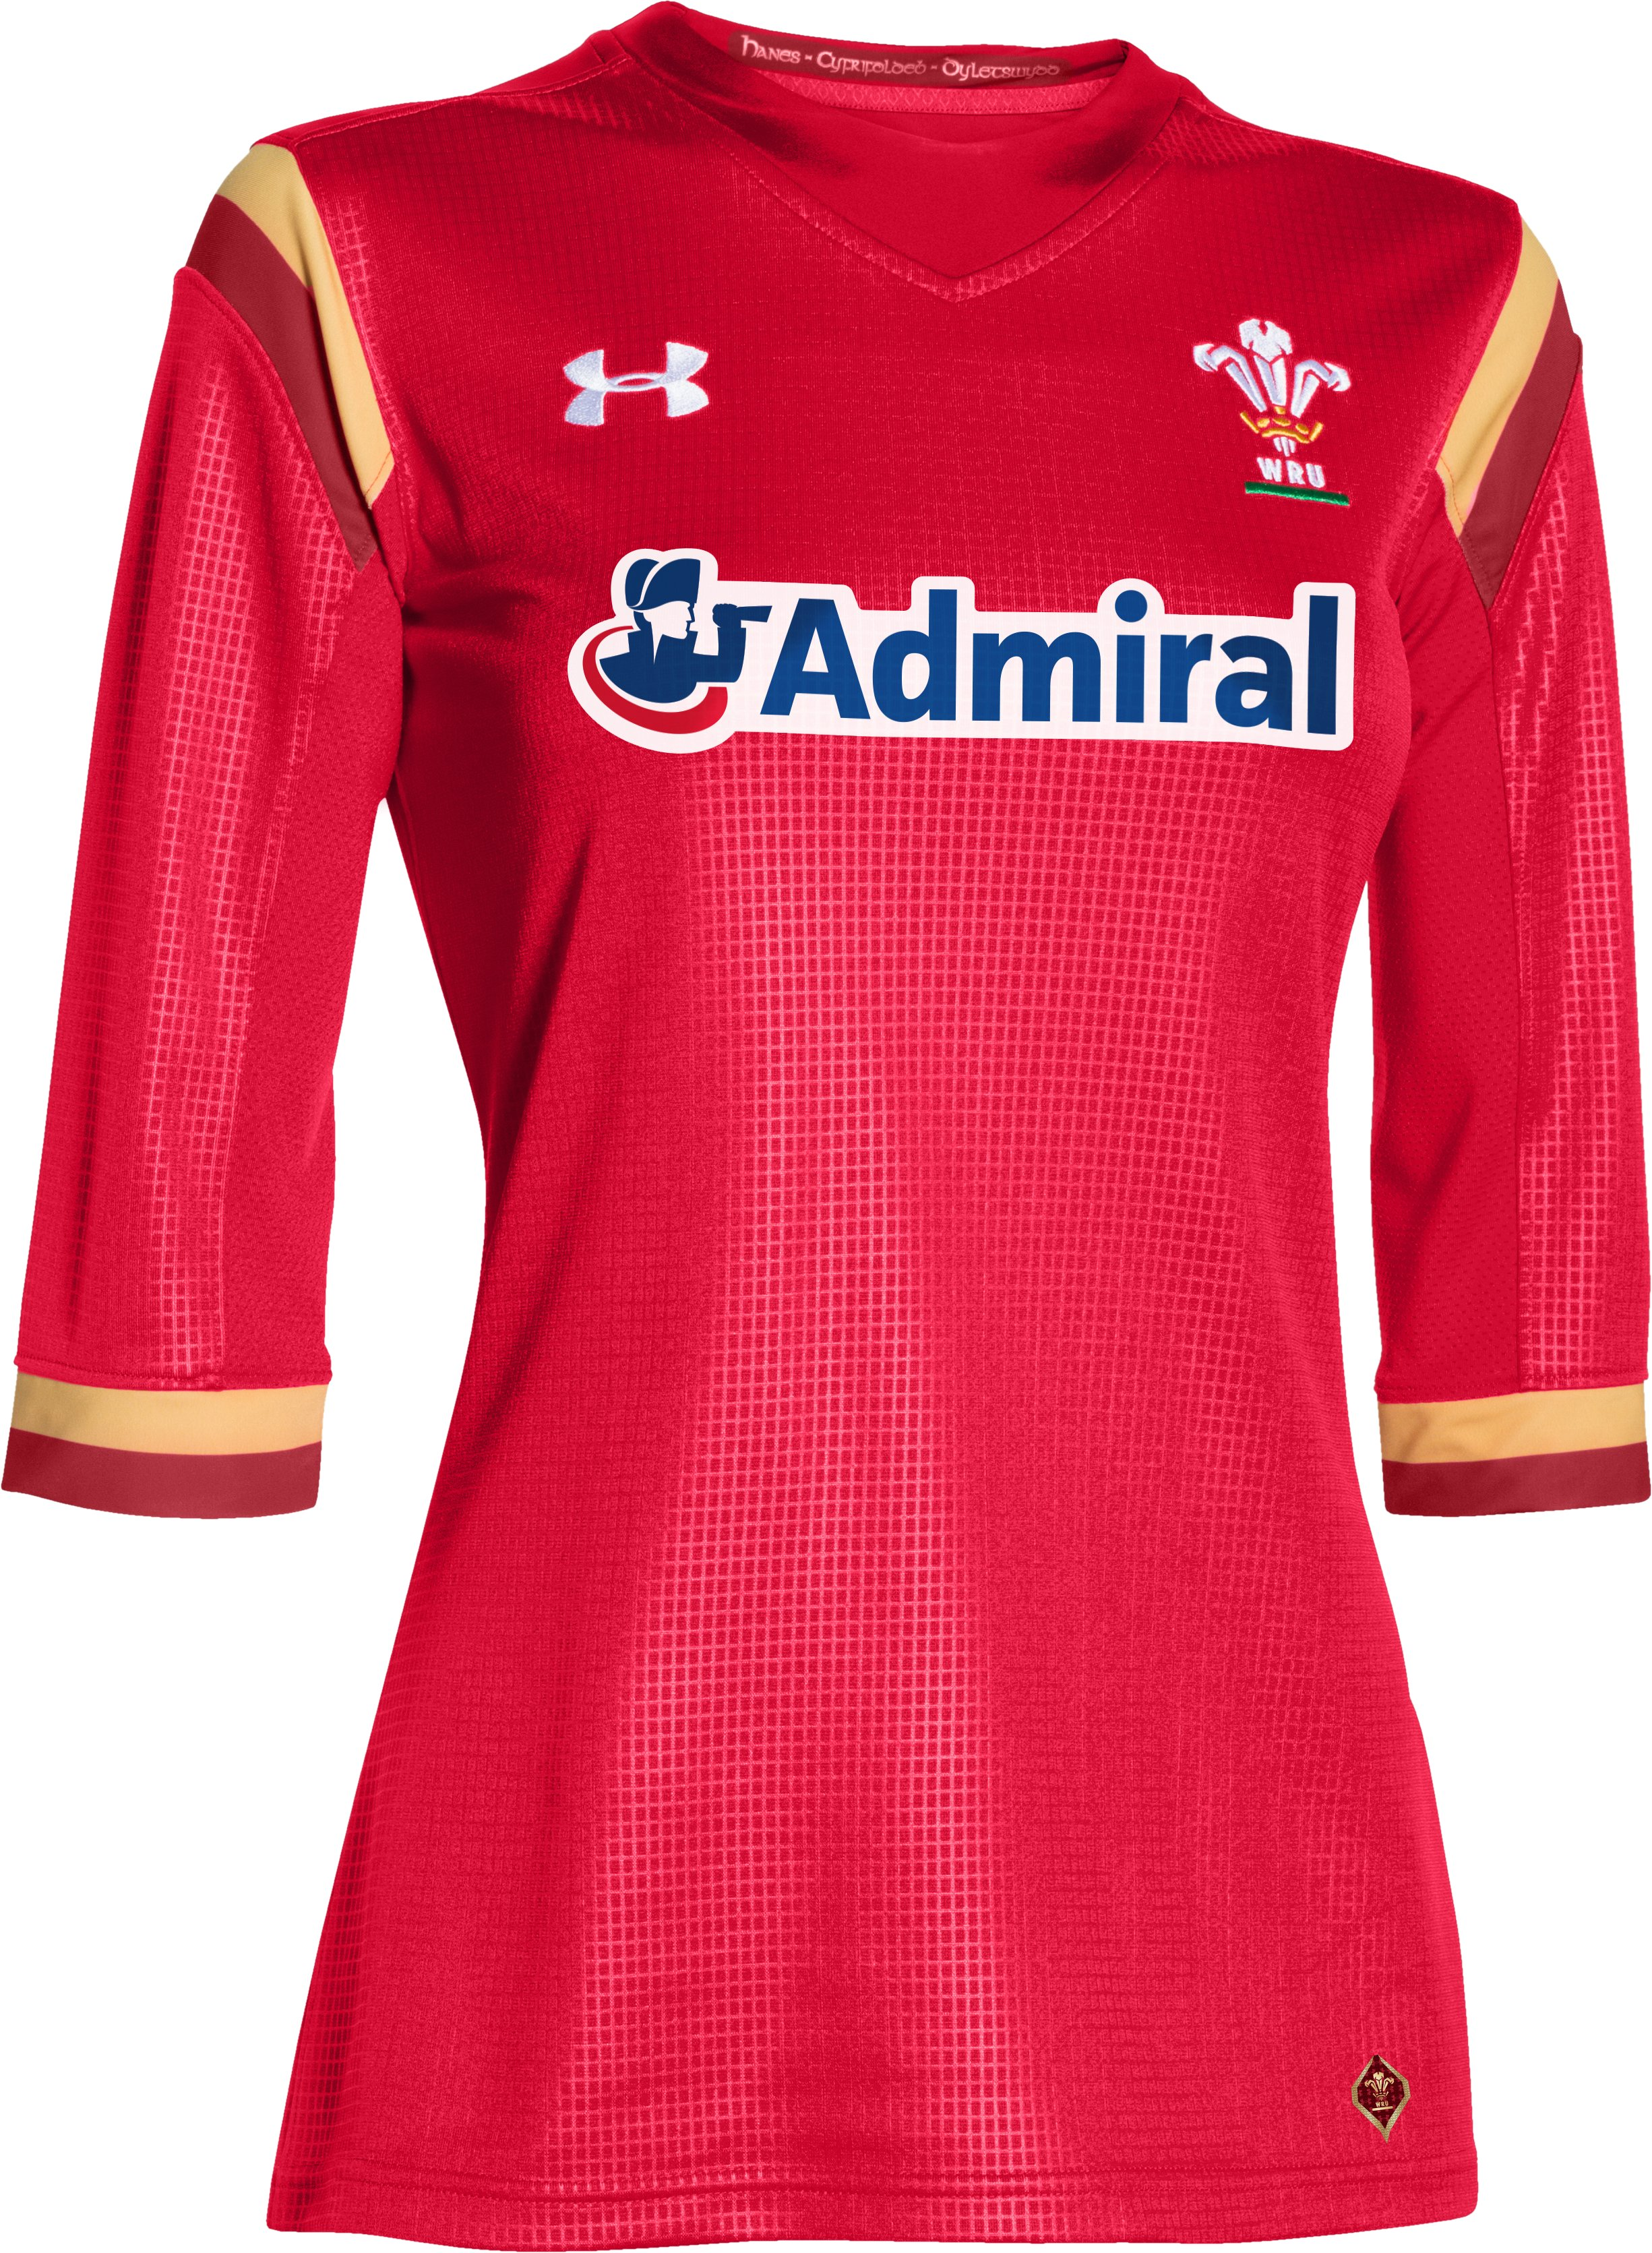 Women's WRU 15/16 Supporters Replica Jersey, Red,